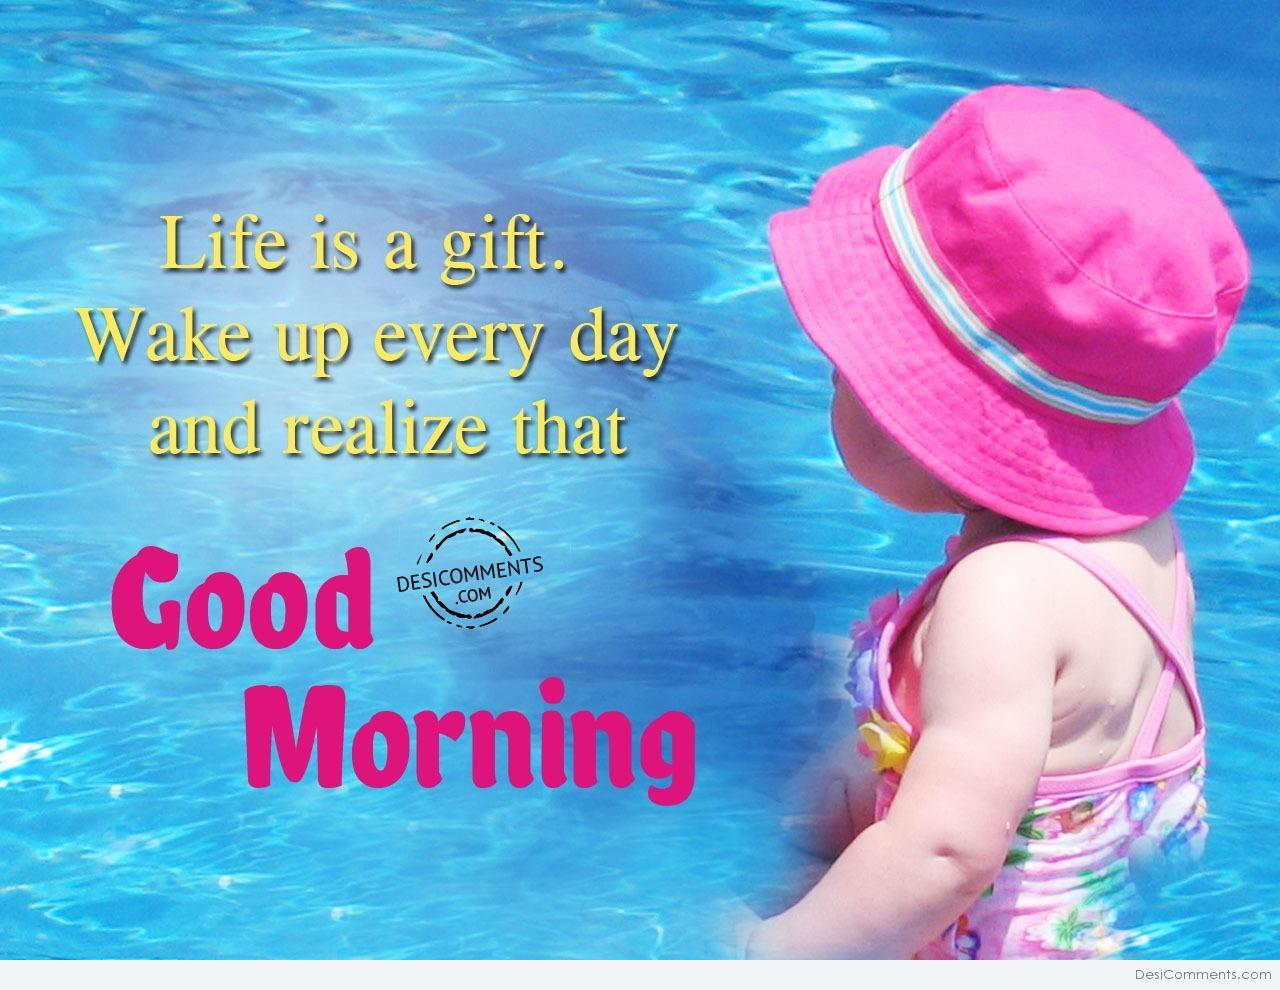 Life is a gift good morning desicomments life is a gift good morning negle Gallery